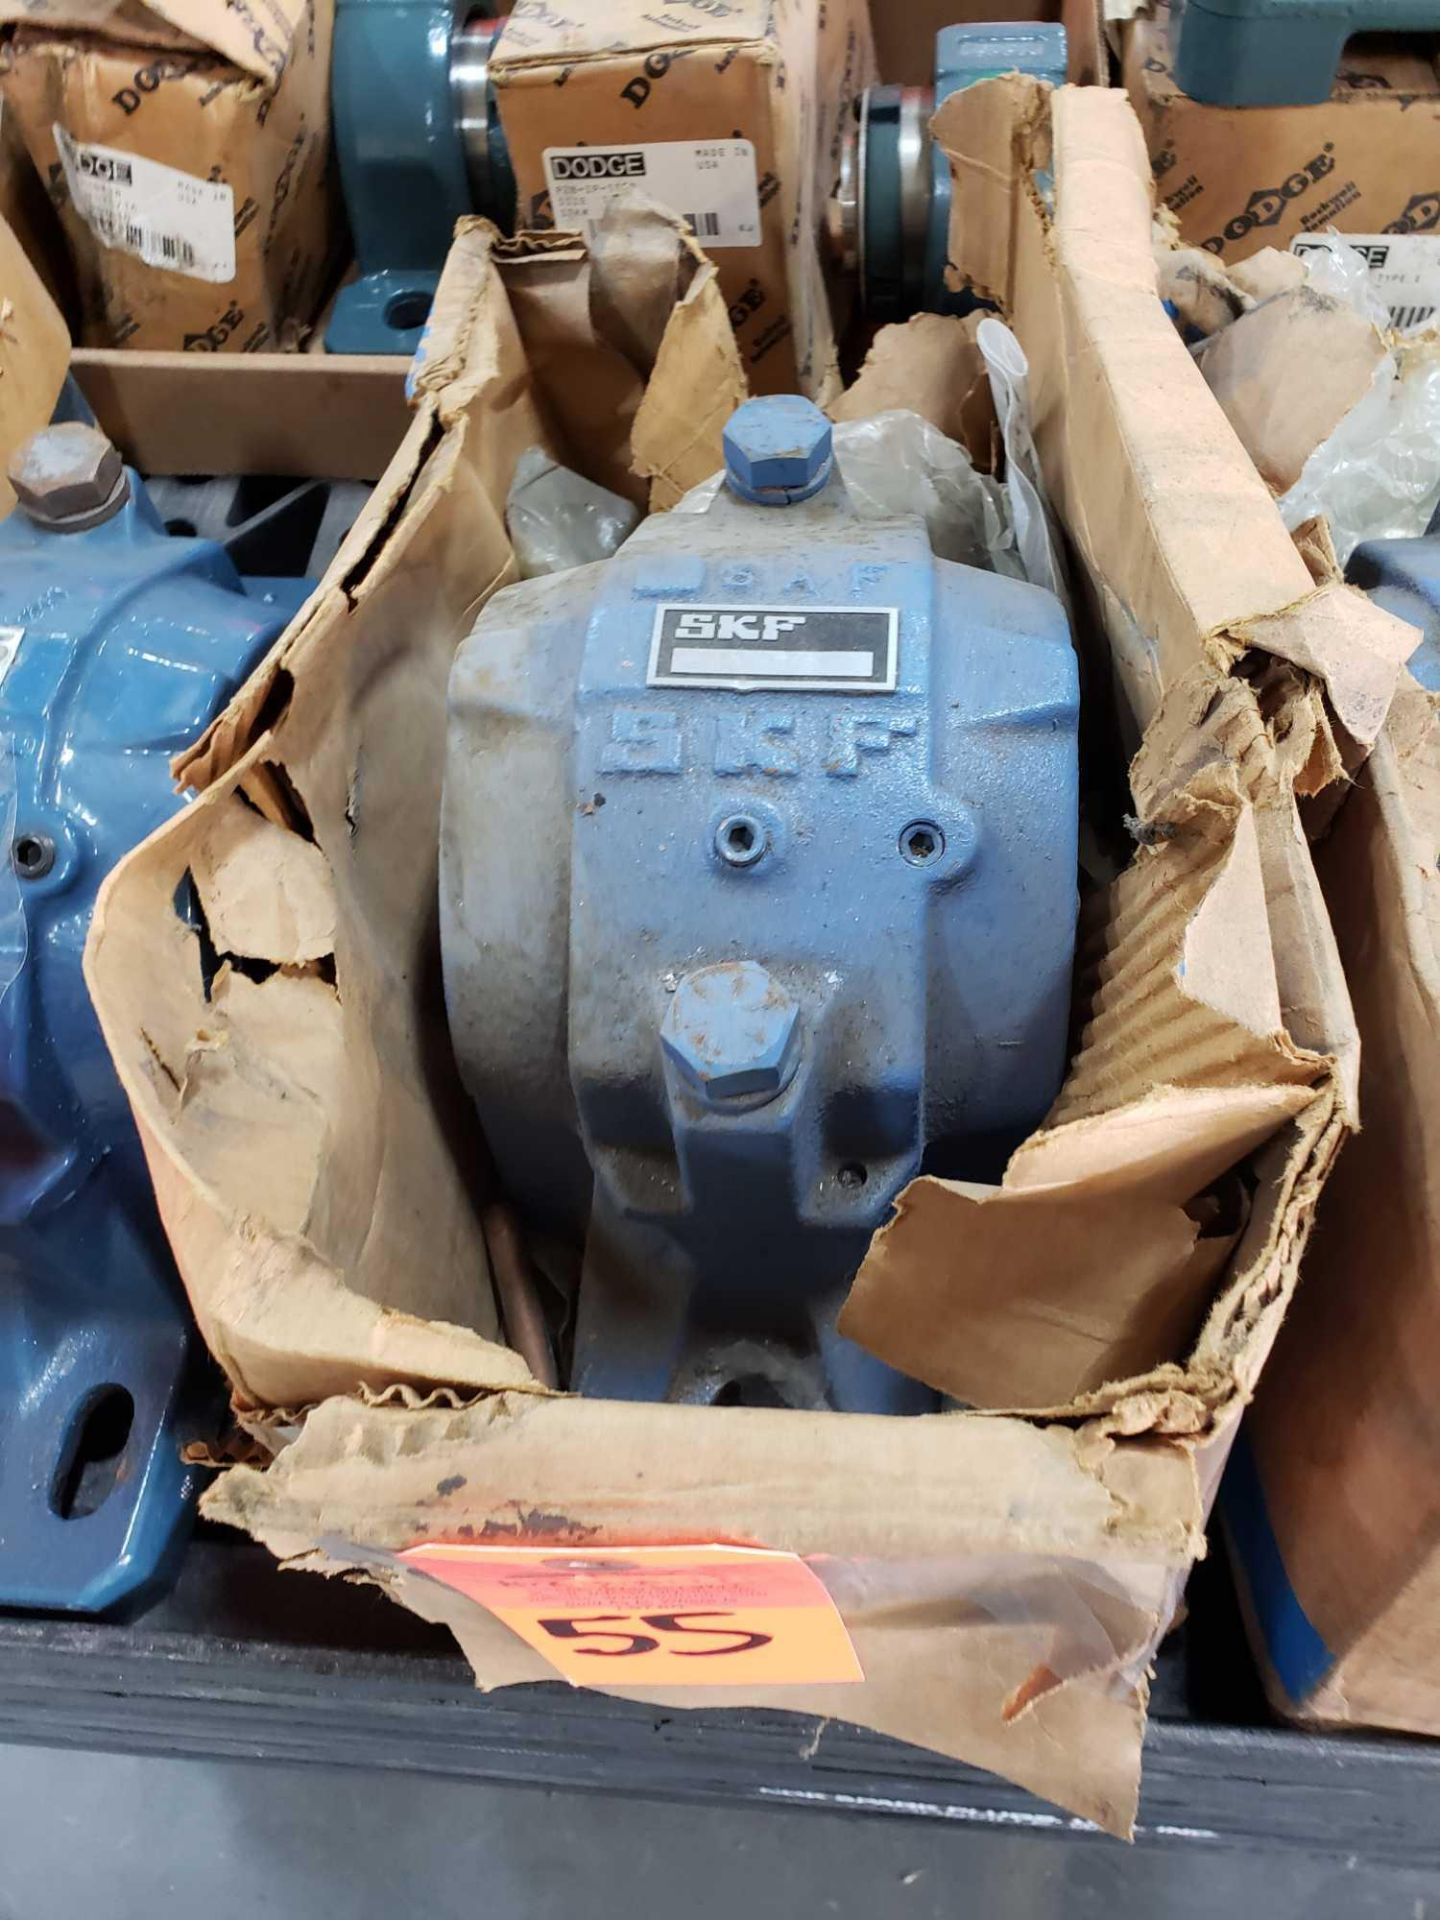 Lot 55 - SKF Bearing Part number SAF-216. New, but dusty from storage.